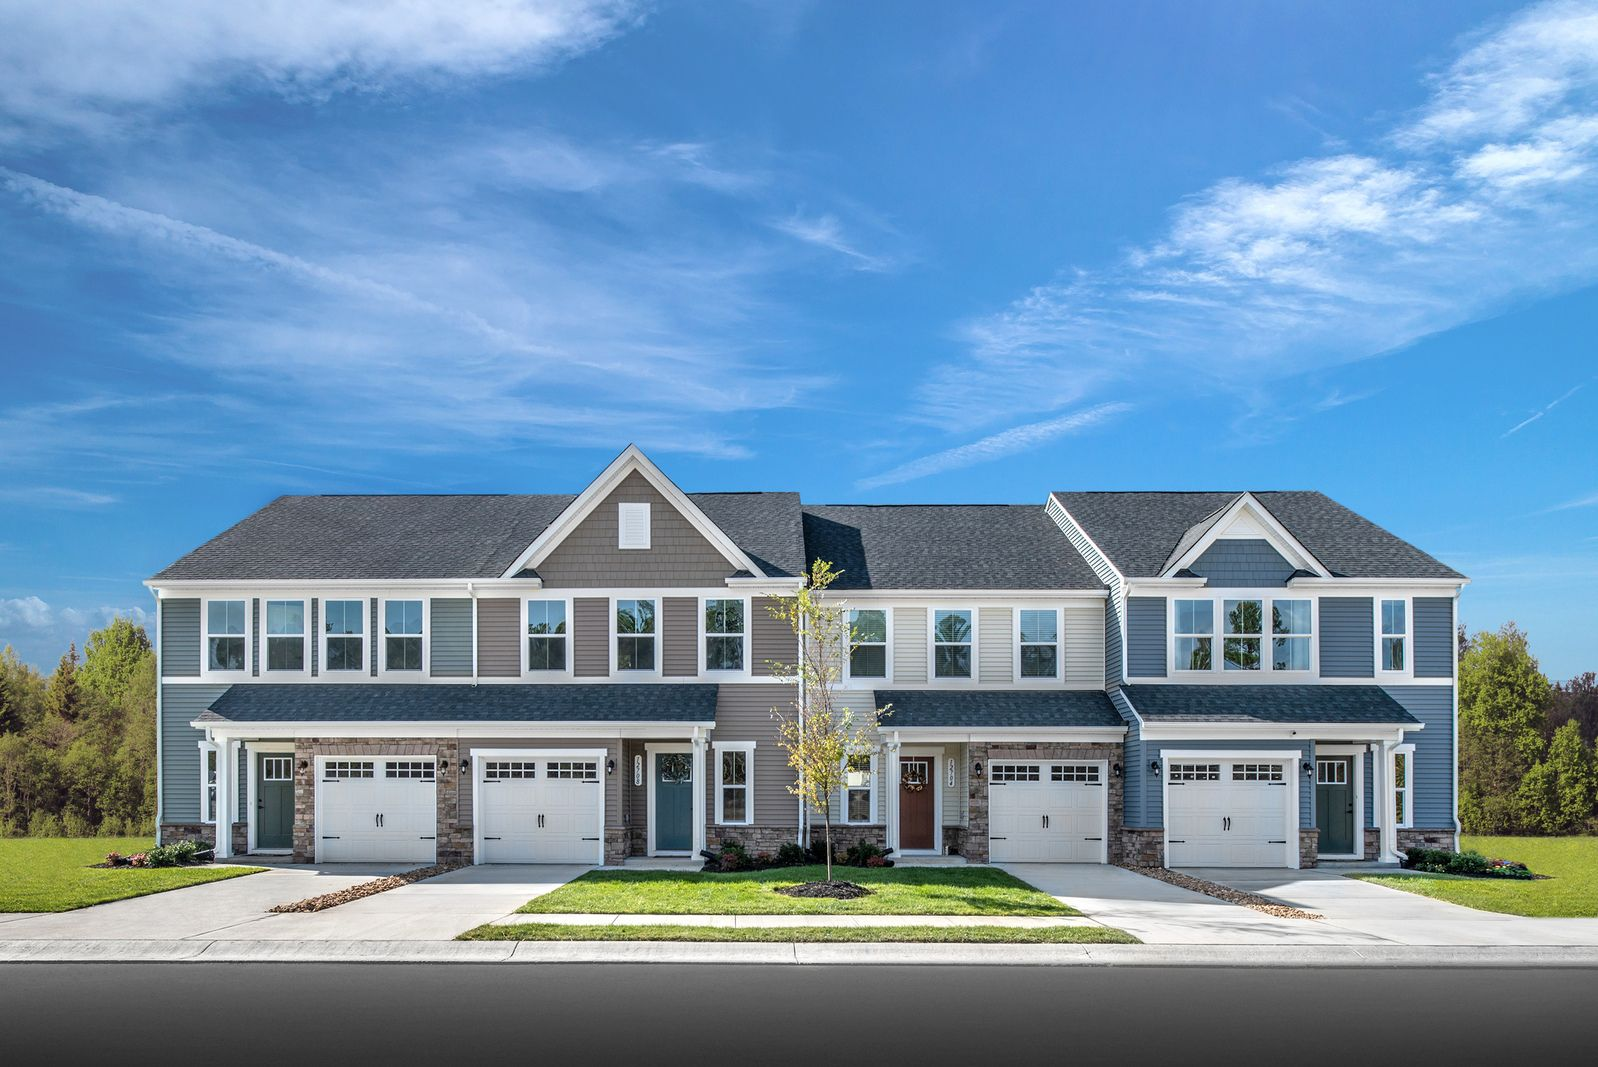 Why rent when you can own for the same or less? From the $240s:Own in Greenville's most amenity-filled townhome community.Schedule your visitto learn more!